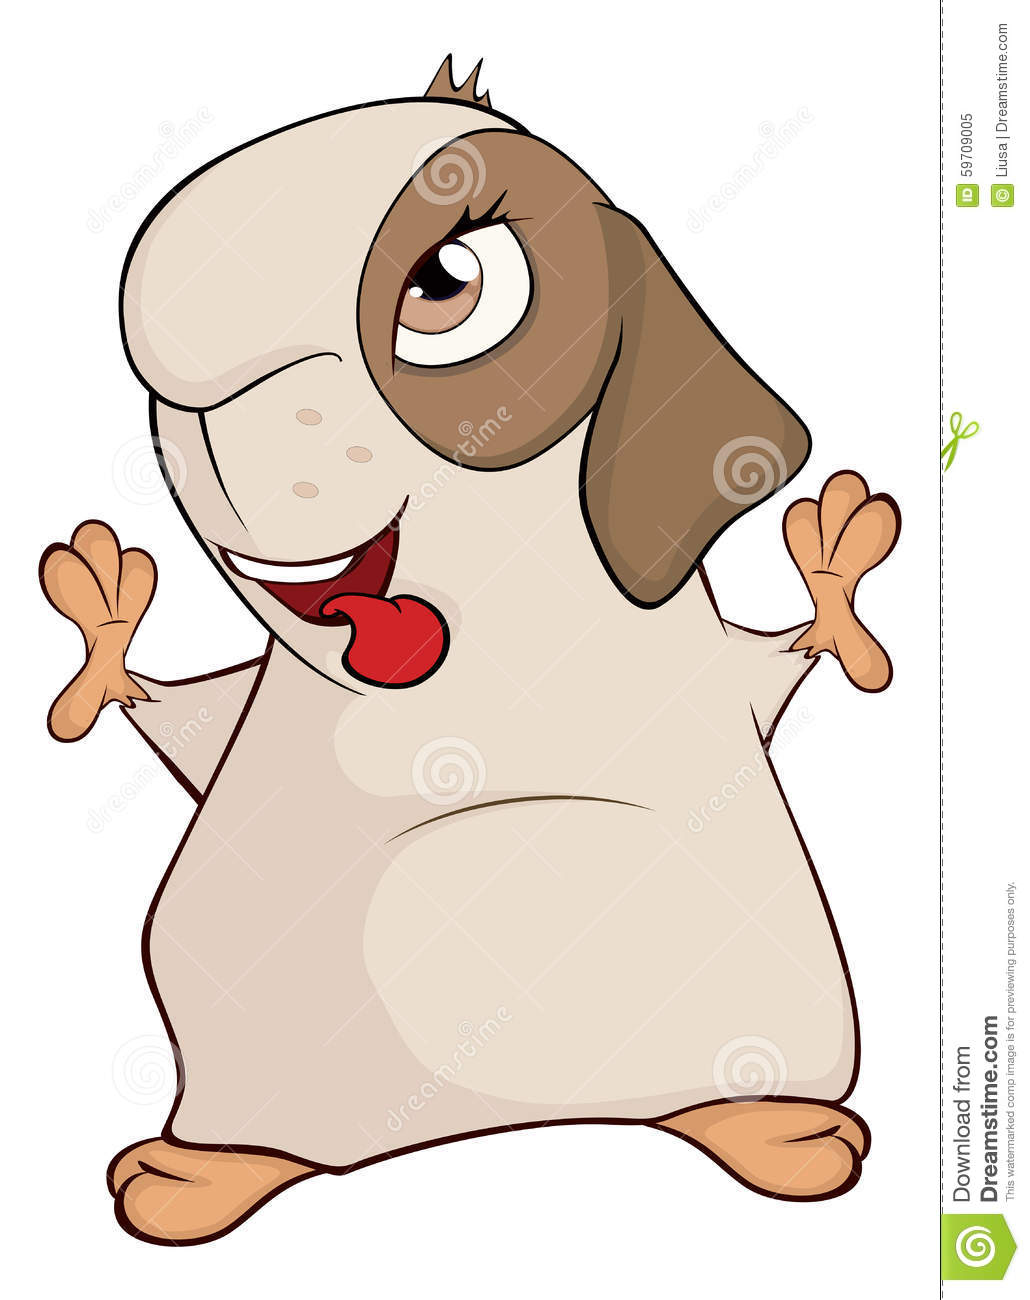 Funny Brown Guinea Pig Cartoon Stock Vector - Image: 59709005